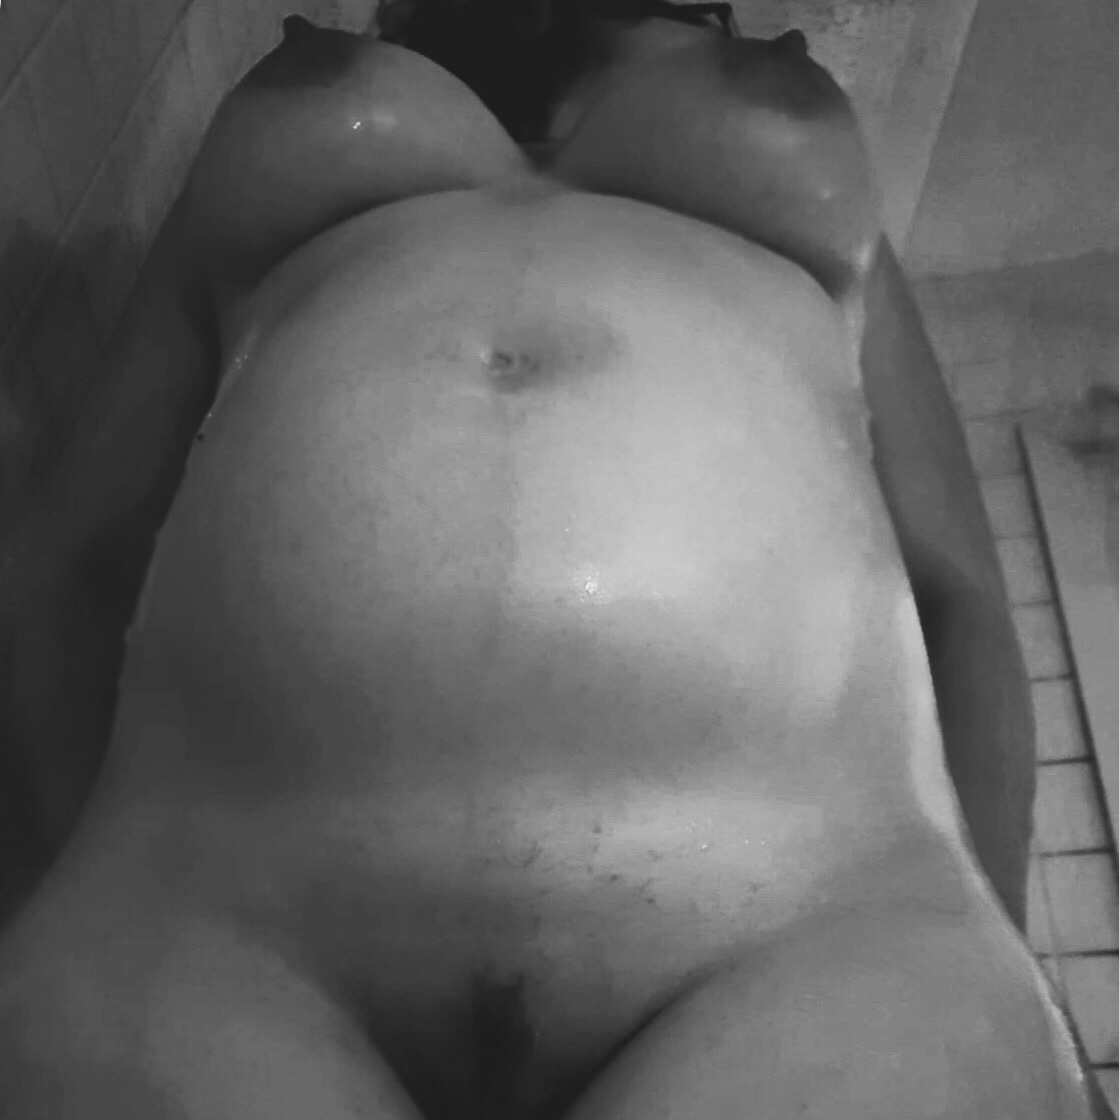 A black and white image of my 28 week pregnant body, seen from below as I stand up from the bath.